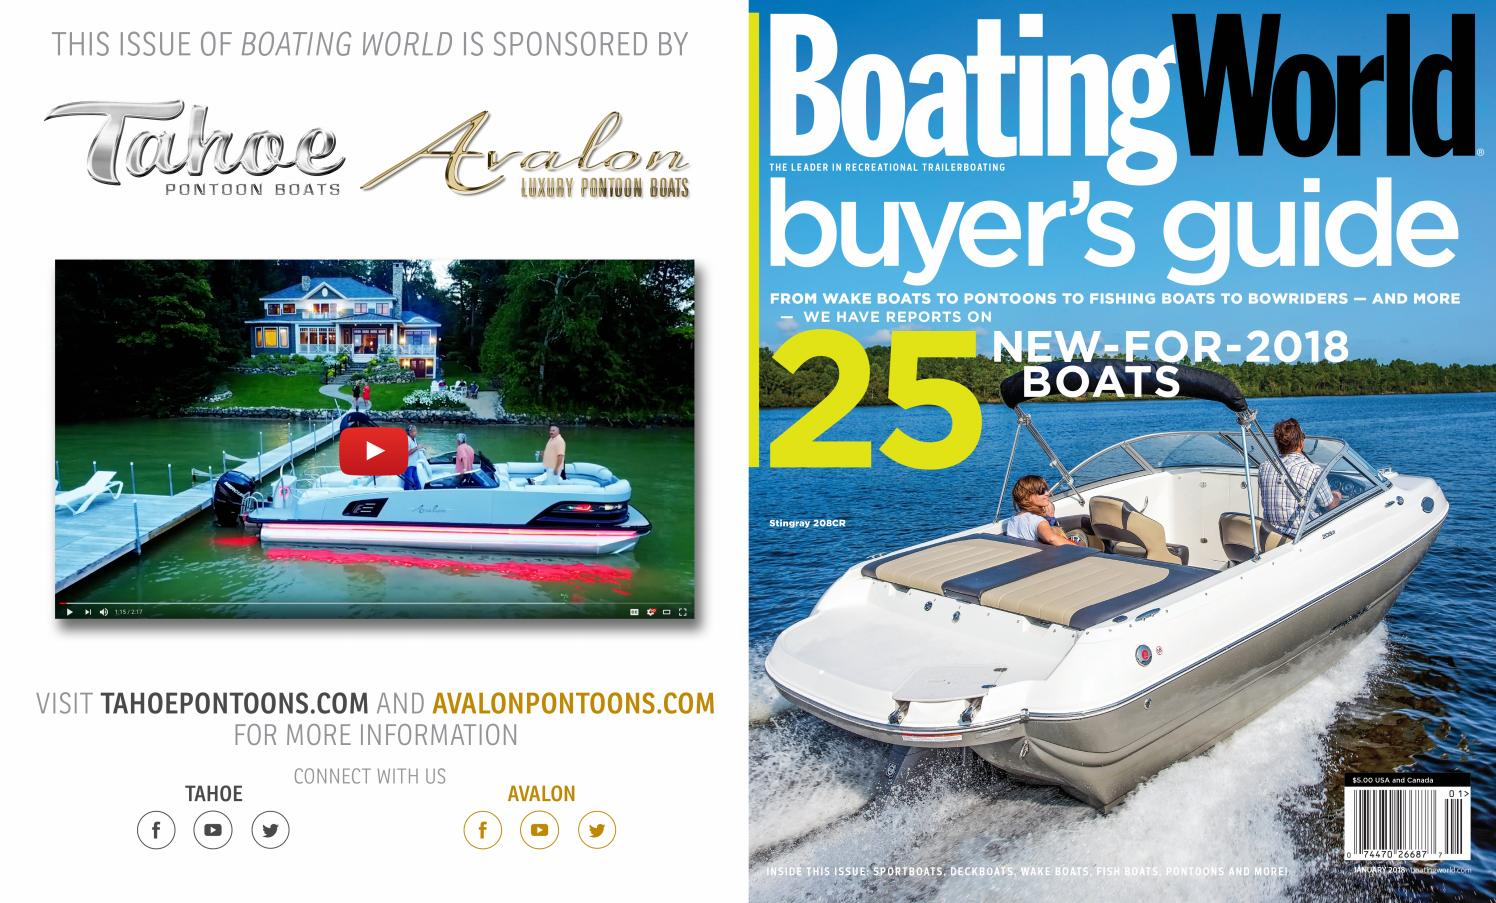 January 2018 - Boating World